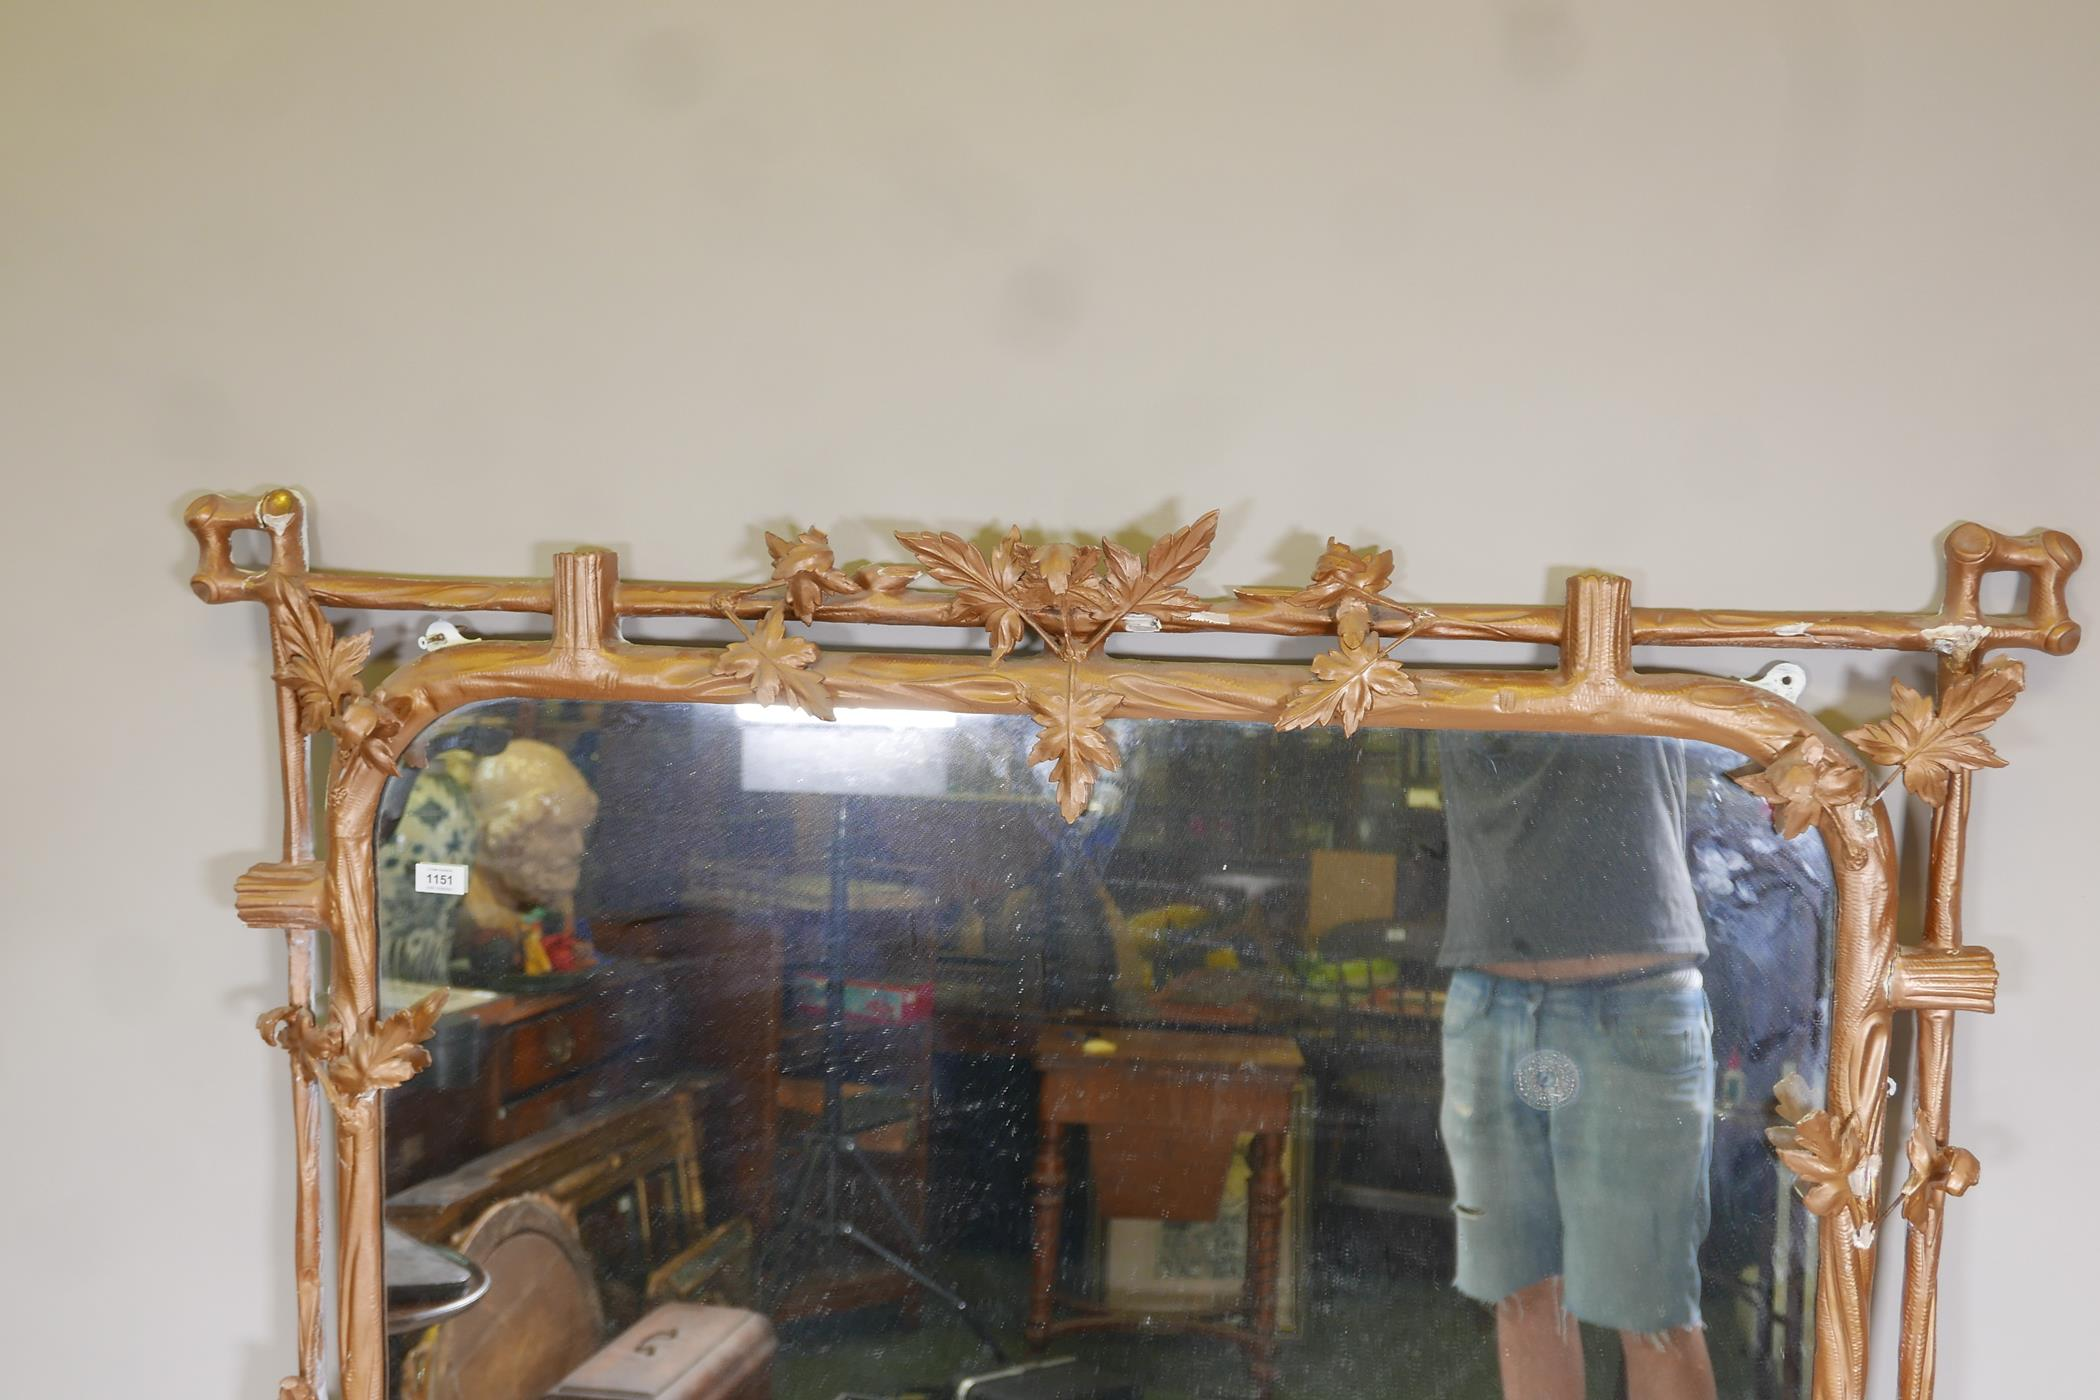 """A C19th giltwood and composition overmantel mirror of naturalistic form, A/F, 52"""" x 59"""" - Image 3 of 5"""